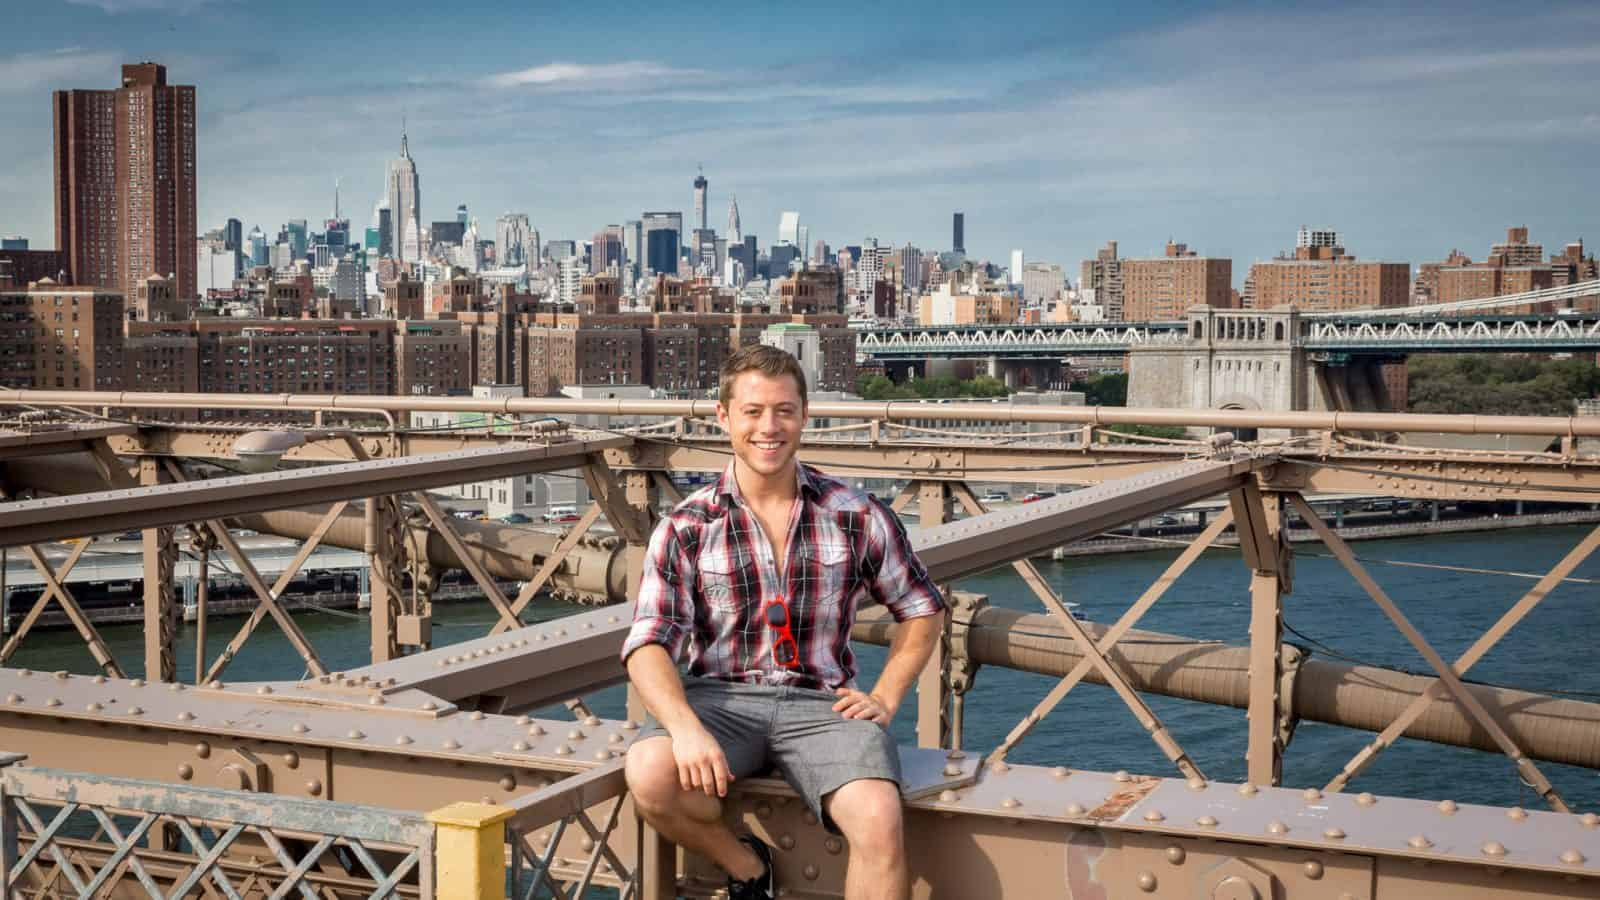 Jeremy Foster sitting on the Brooklyn Bridge in New York City